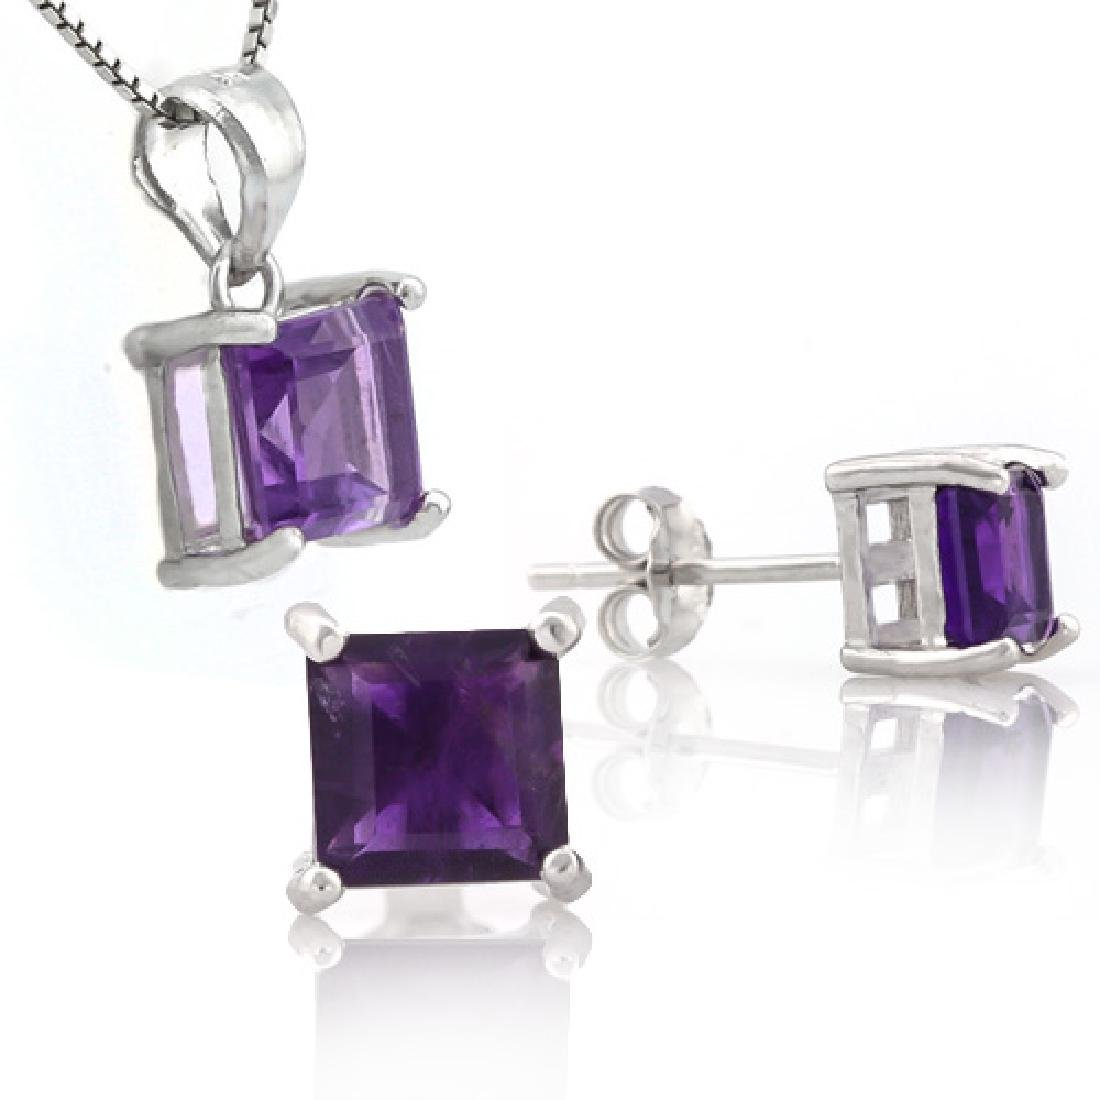 2 1/4 CARAT AMETHYSTS 925 STERLING SILVER